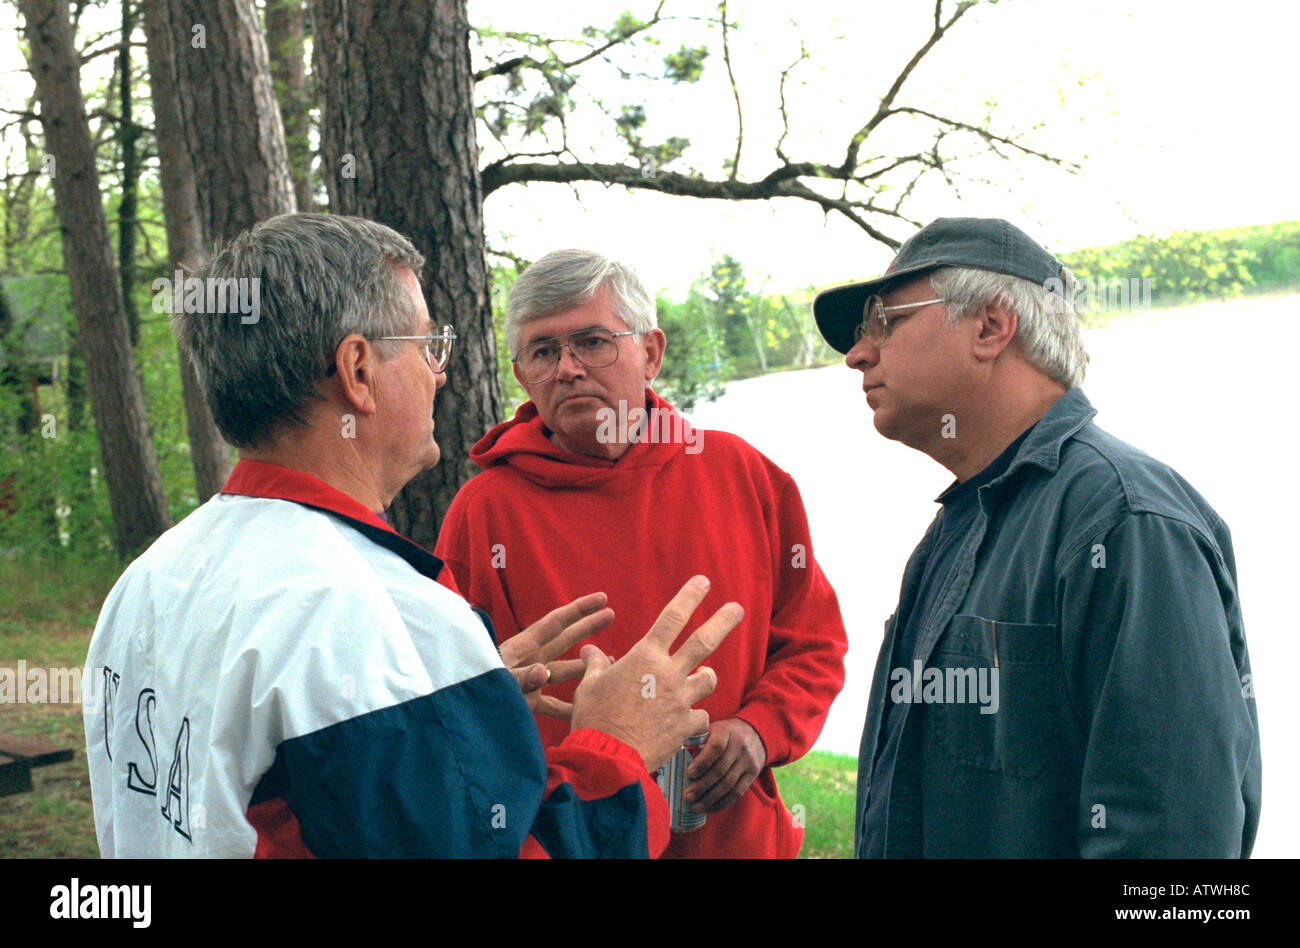 Friends ages 50 and 62 talking at men's encounter weekend at Roy Lake. Nisswa Minnesota USA - Stock Image